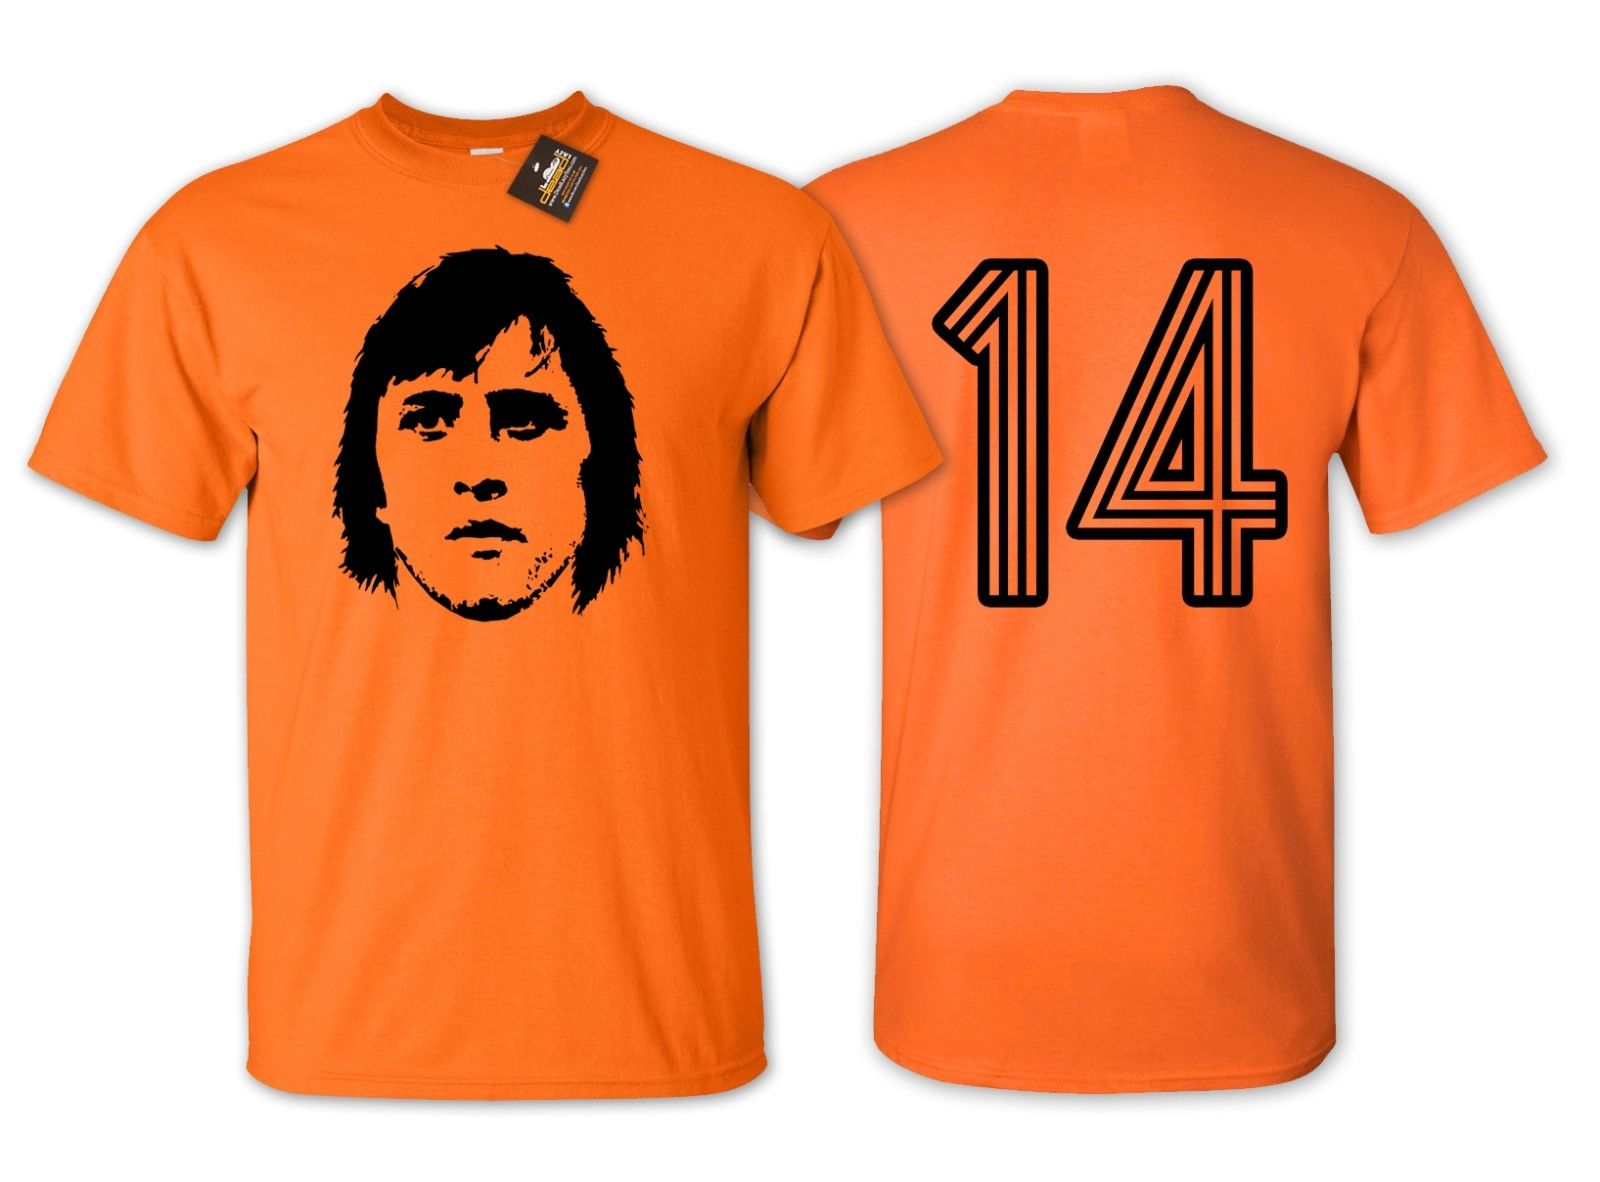 2019 Funny Cruyff 14 Holland Football T Shirt - Netherlands Euros Fan Shirt New Double Side Unisex Tee